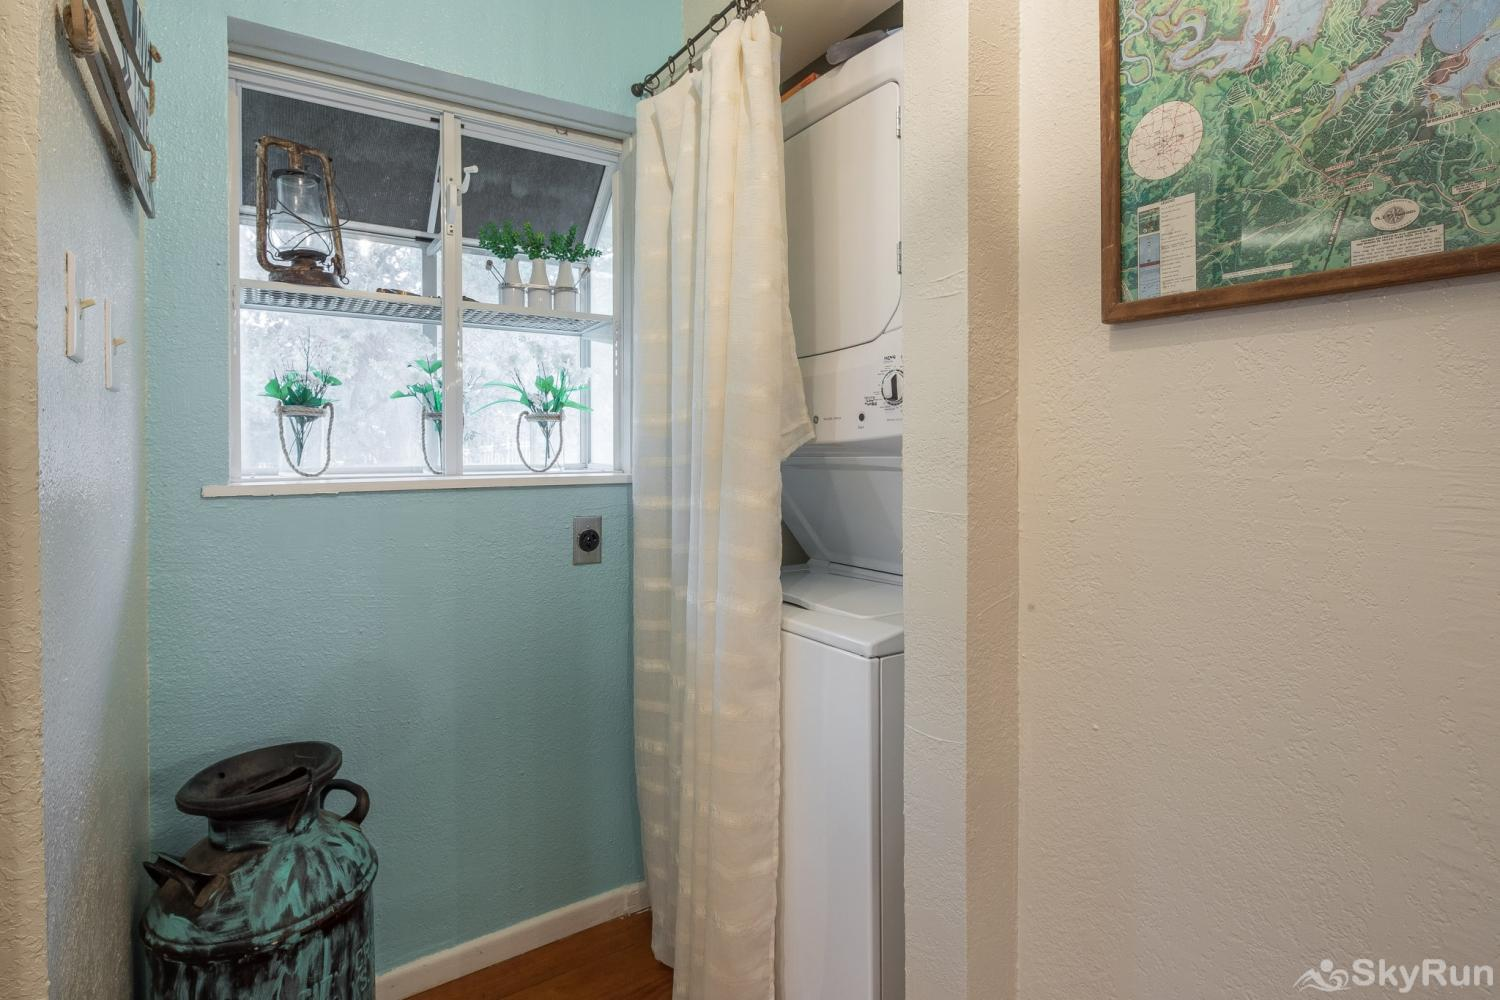 WATERFRONT GRACE Washer and dryer available for guest use